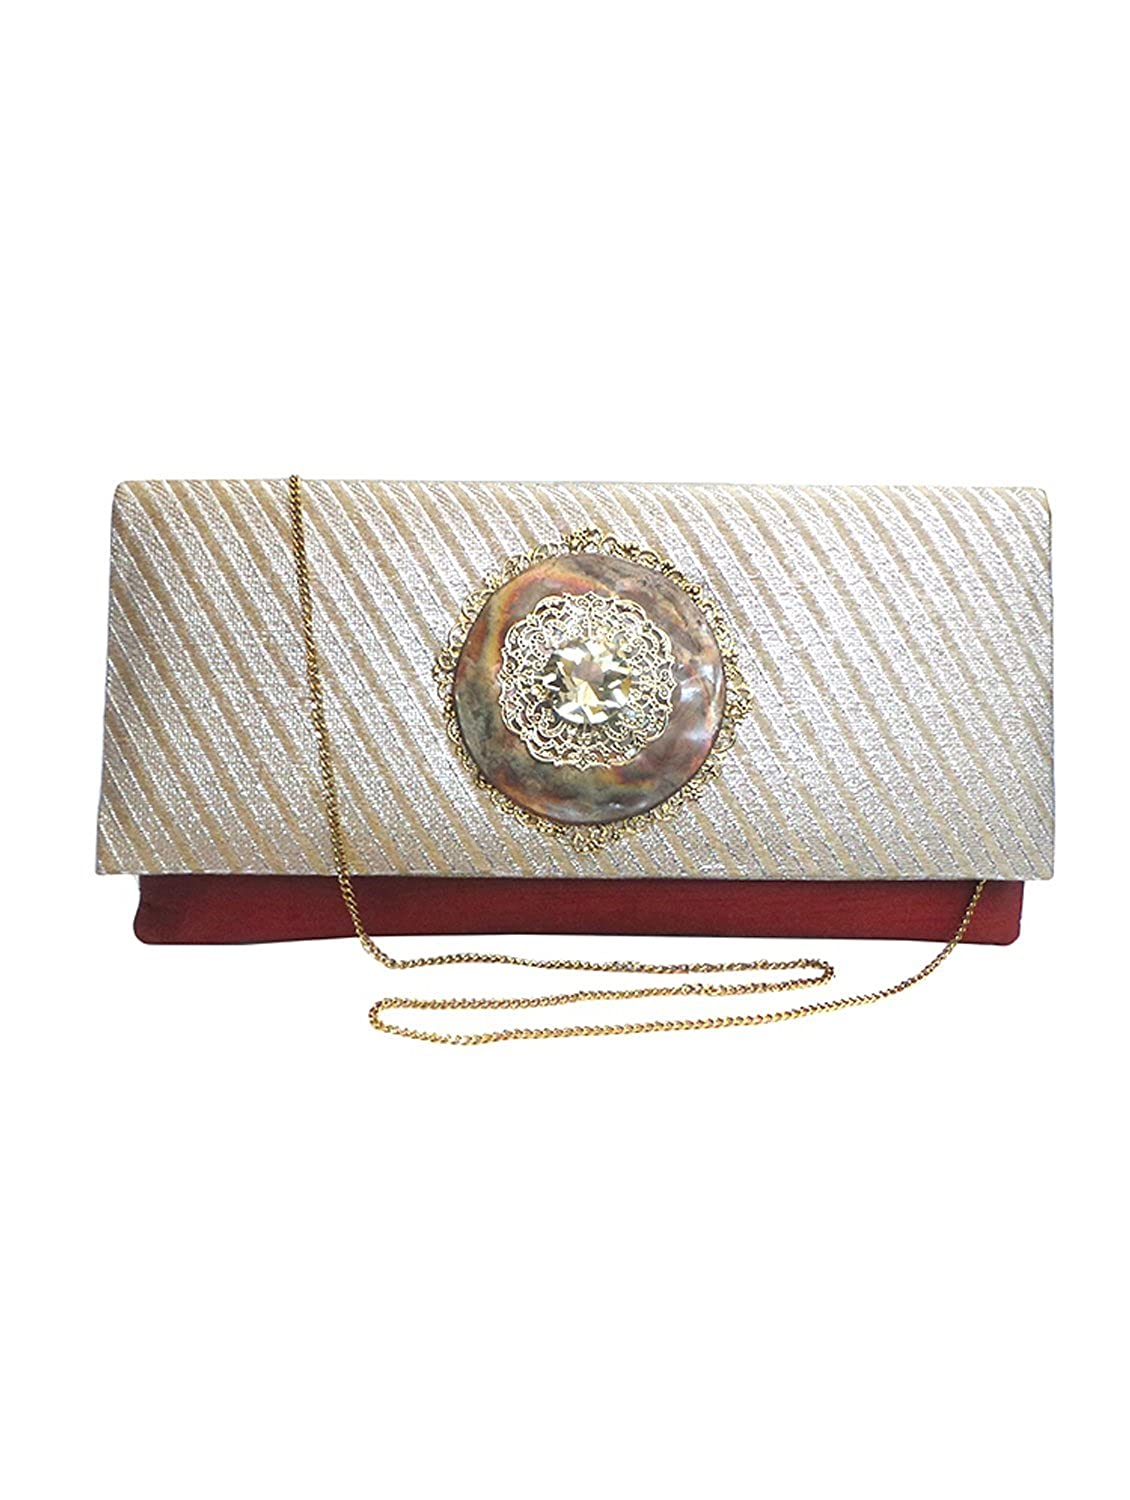 Bhamini Duo Clutch with Antique Copper Brooch